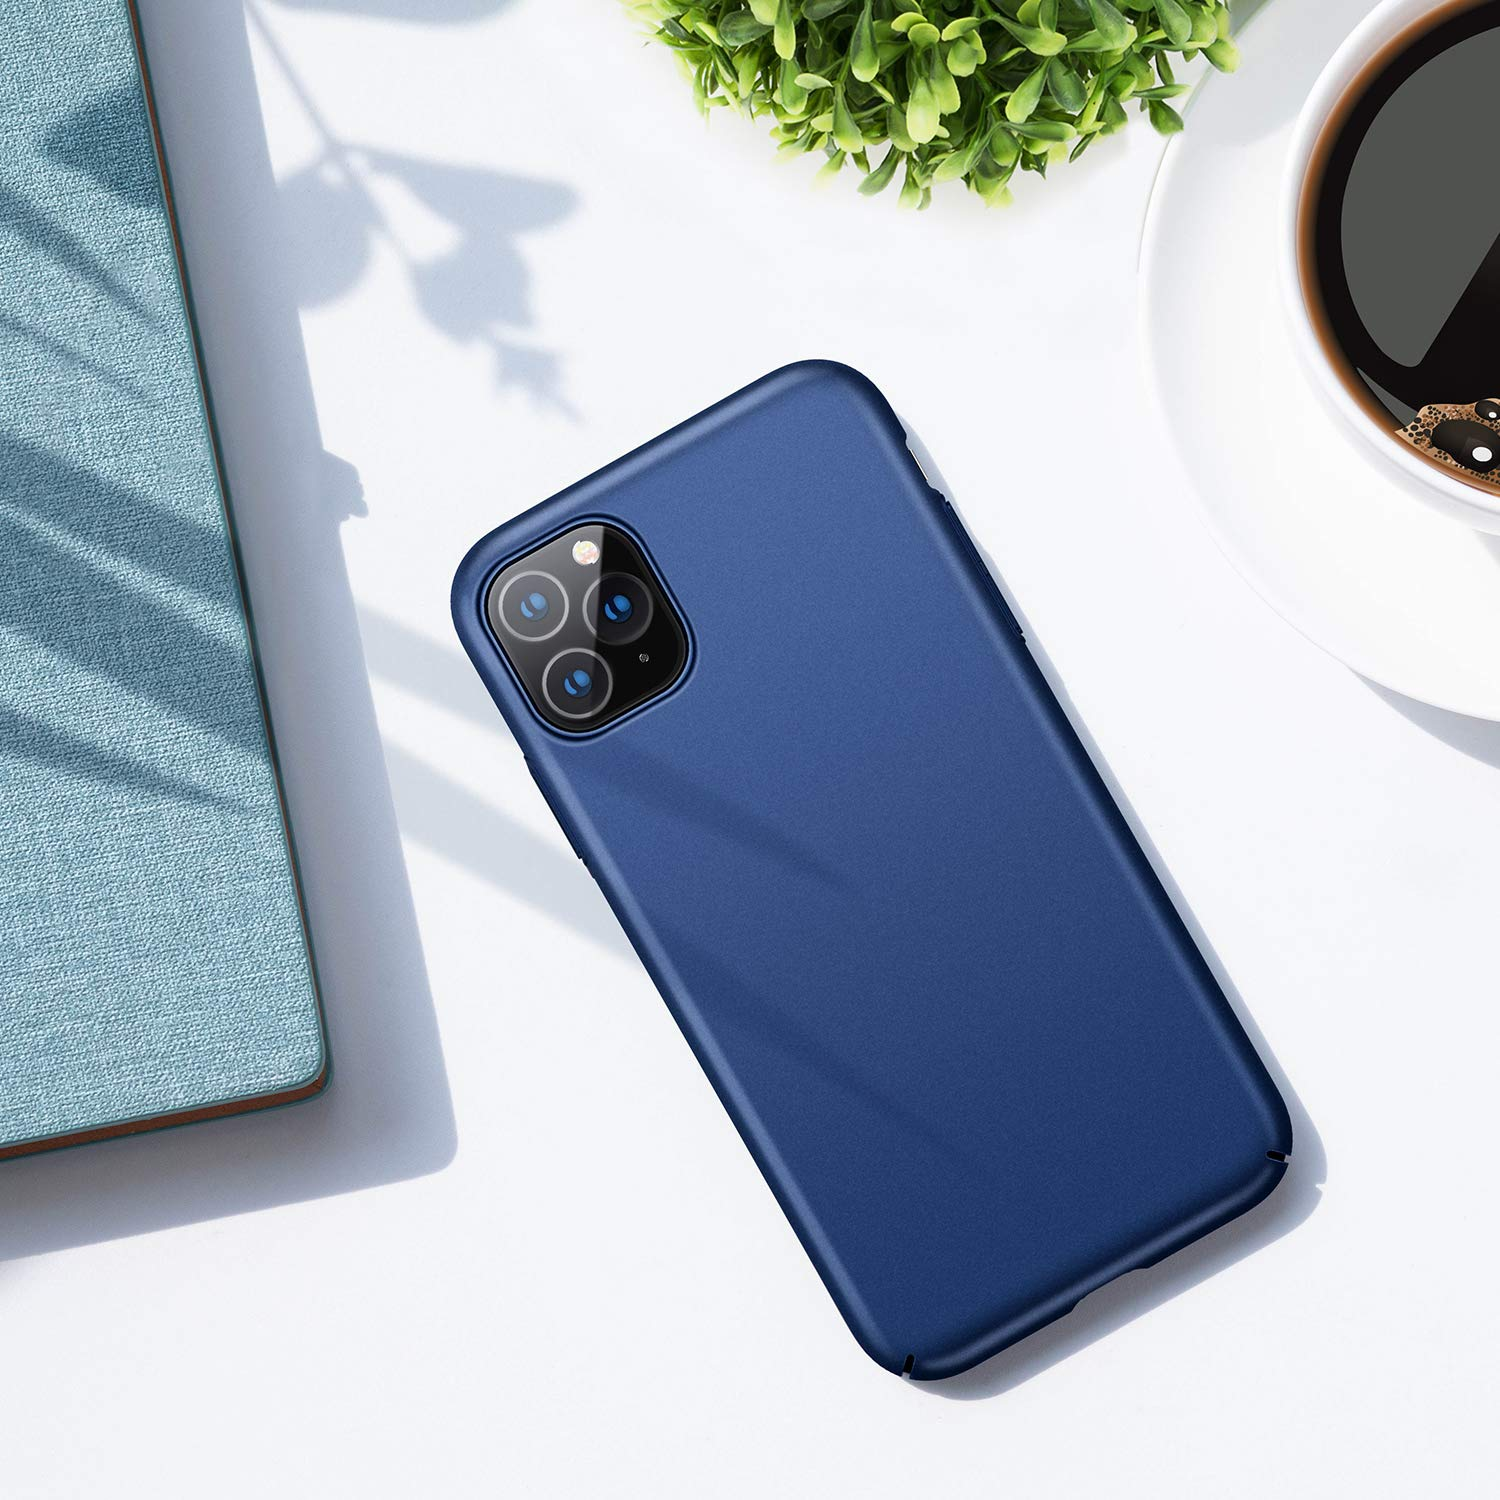 Slim Fit Full Protective Case with Matte Finish Coating Grip Ultra Thin Cover Phone Case for iPhone 11 Pro 5.8 inch TORRAS iPhone 11 Pro Case 2019 - Black